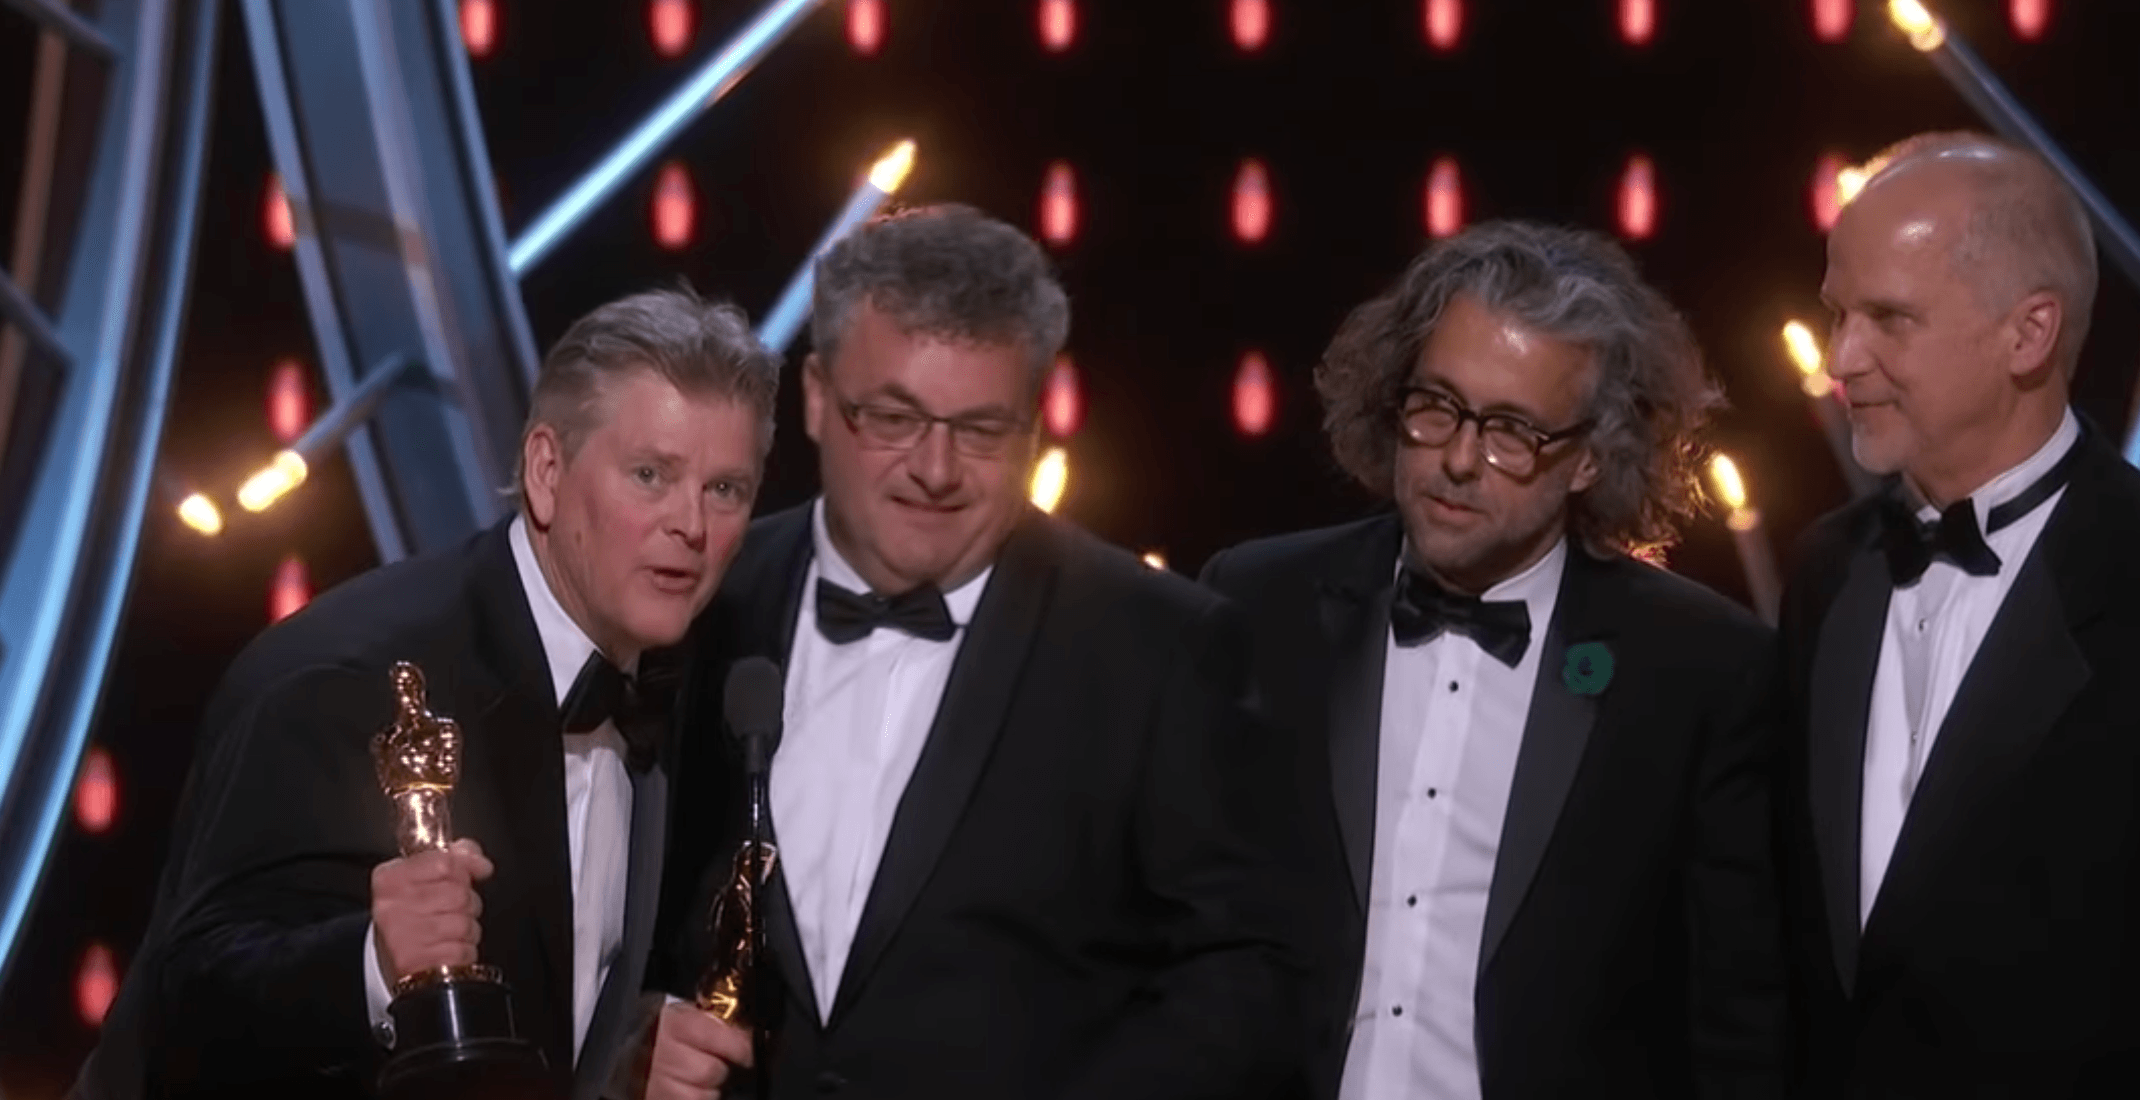 'Merci beaucoup': Montreal gets a shout-out at the 90th Academy Awards (VIDEO)